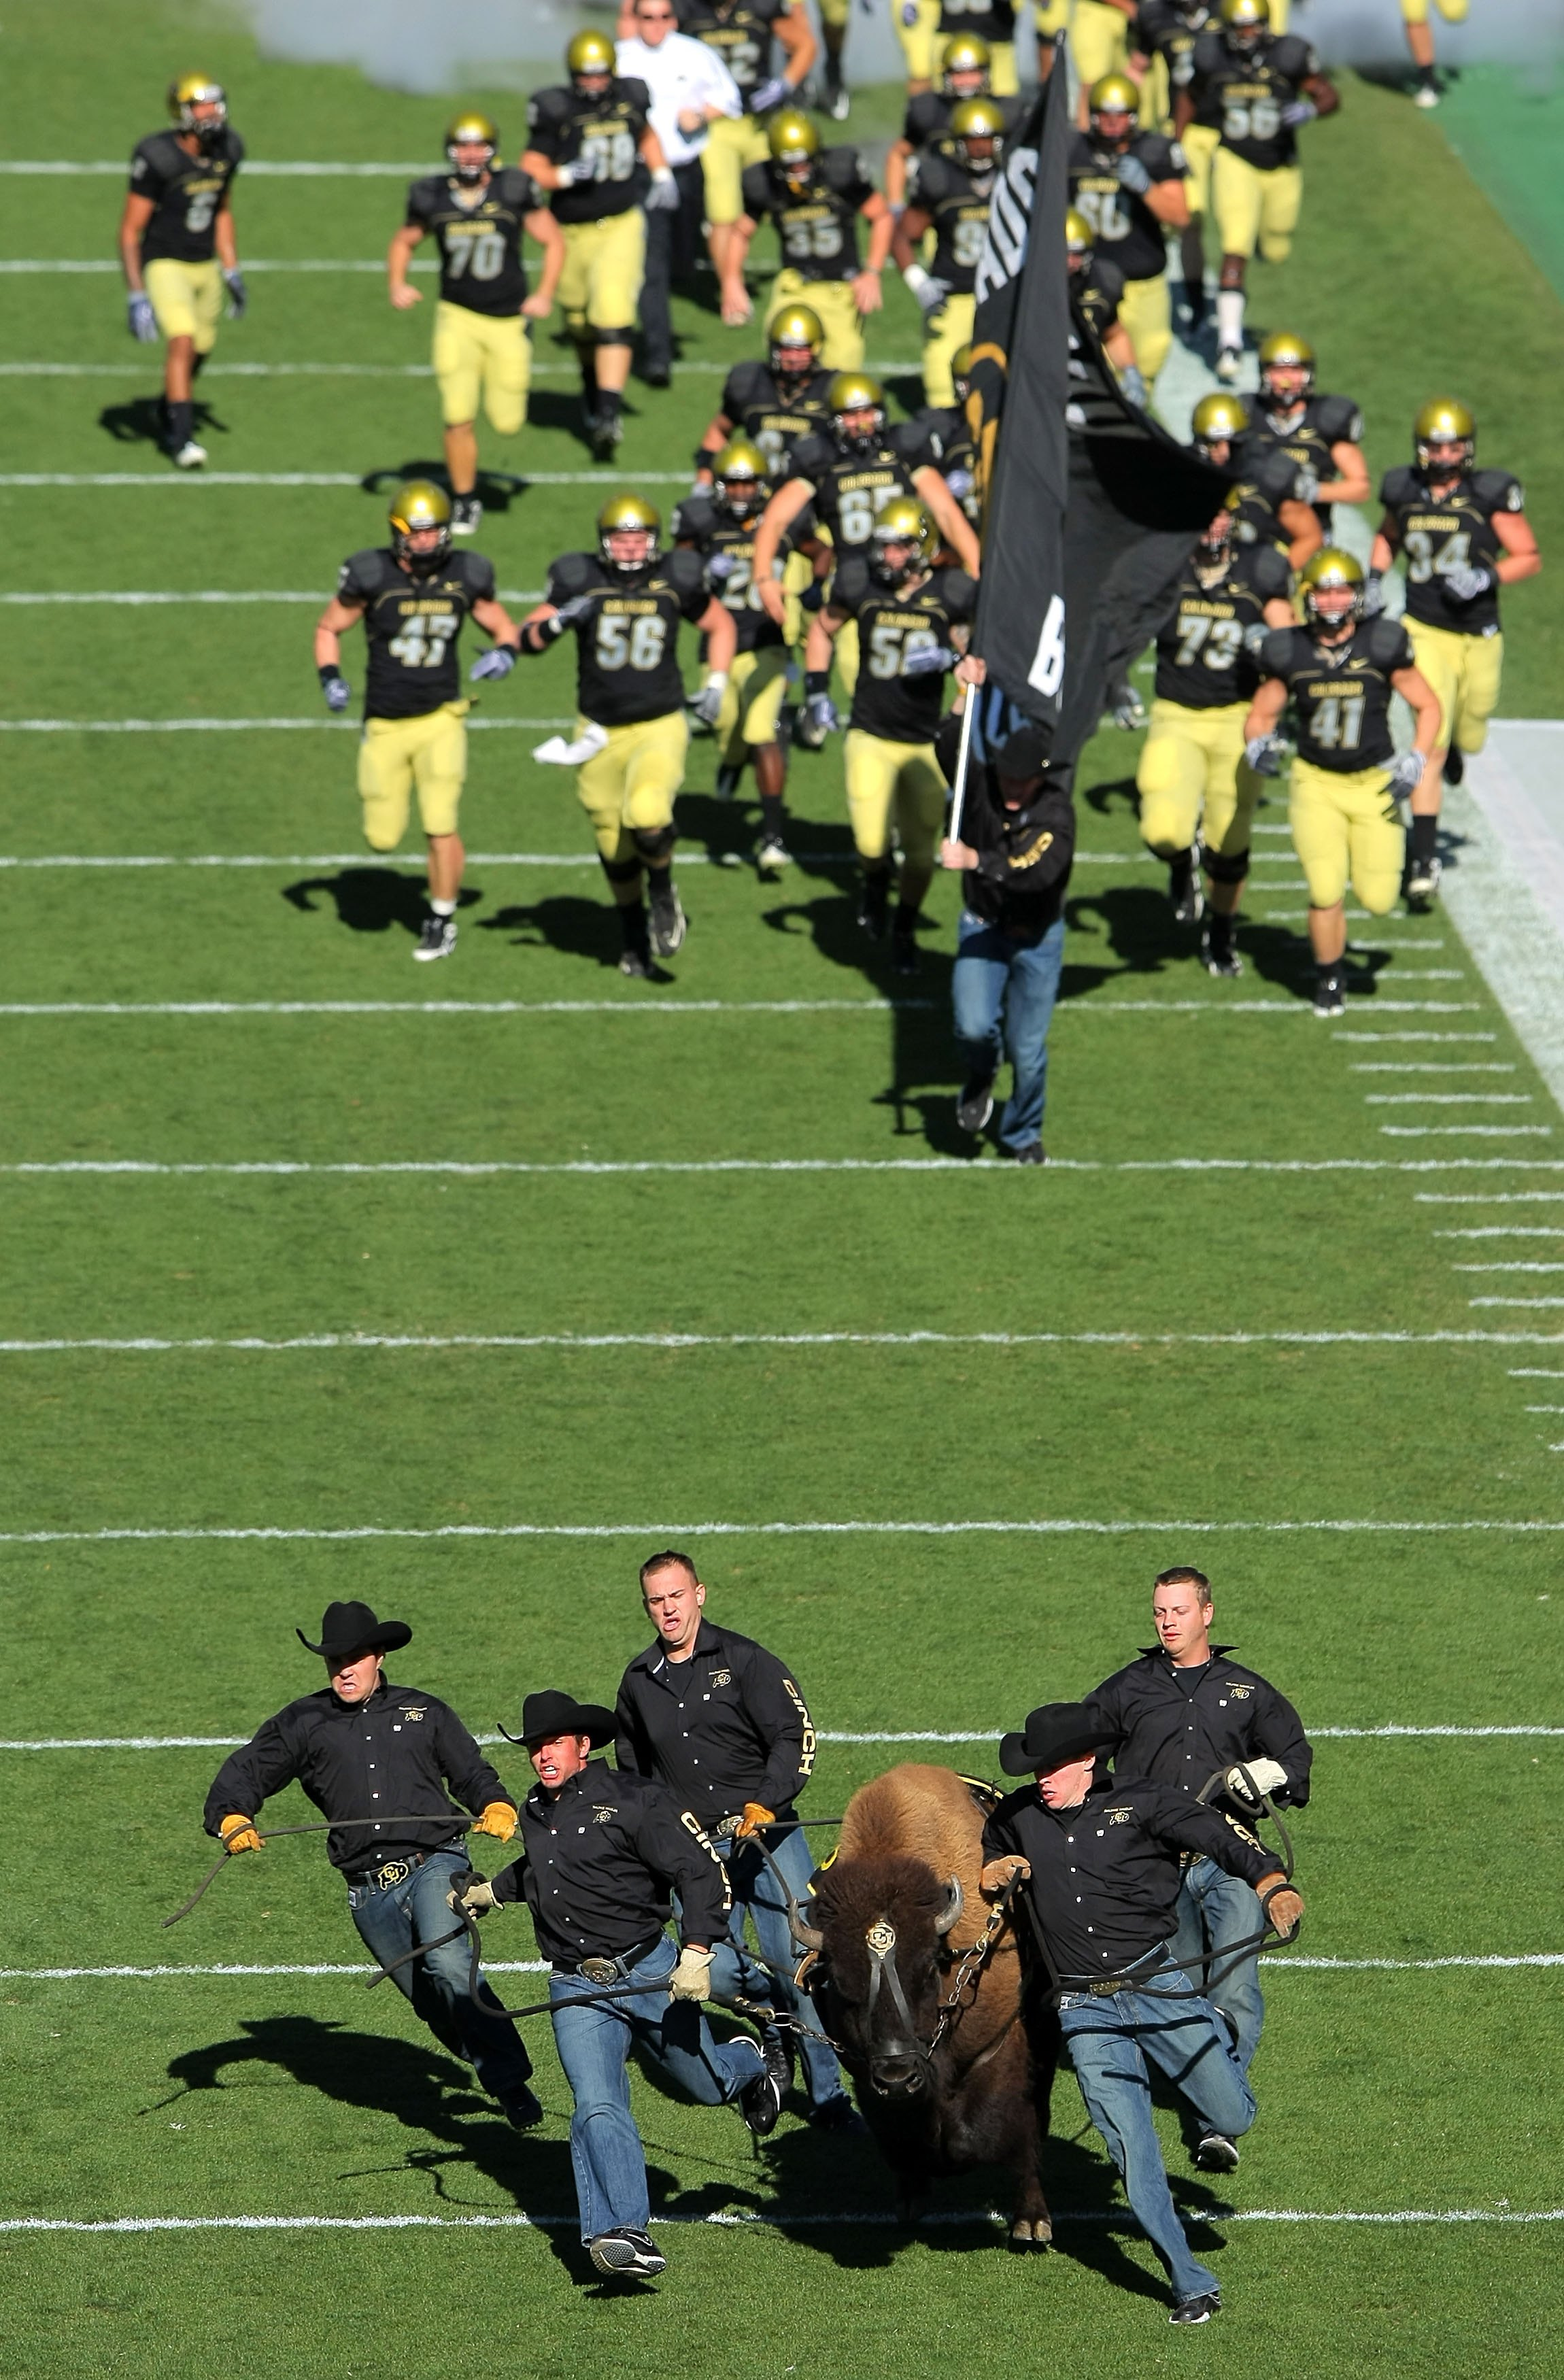 BOULDER, CO - NOVEMBER 07:  The team of 'Ralphie Runners' escort Ralphie V onto the field ahead of the team before the Texas A&M Aggies face the Colorado Buffaloes during NCAA college football action at Folsom Field on November 7, 2009 in Boulder, Colorad